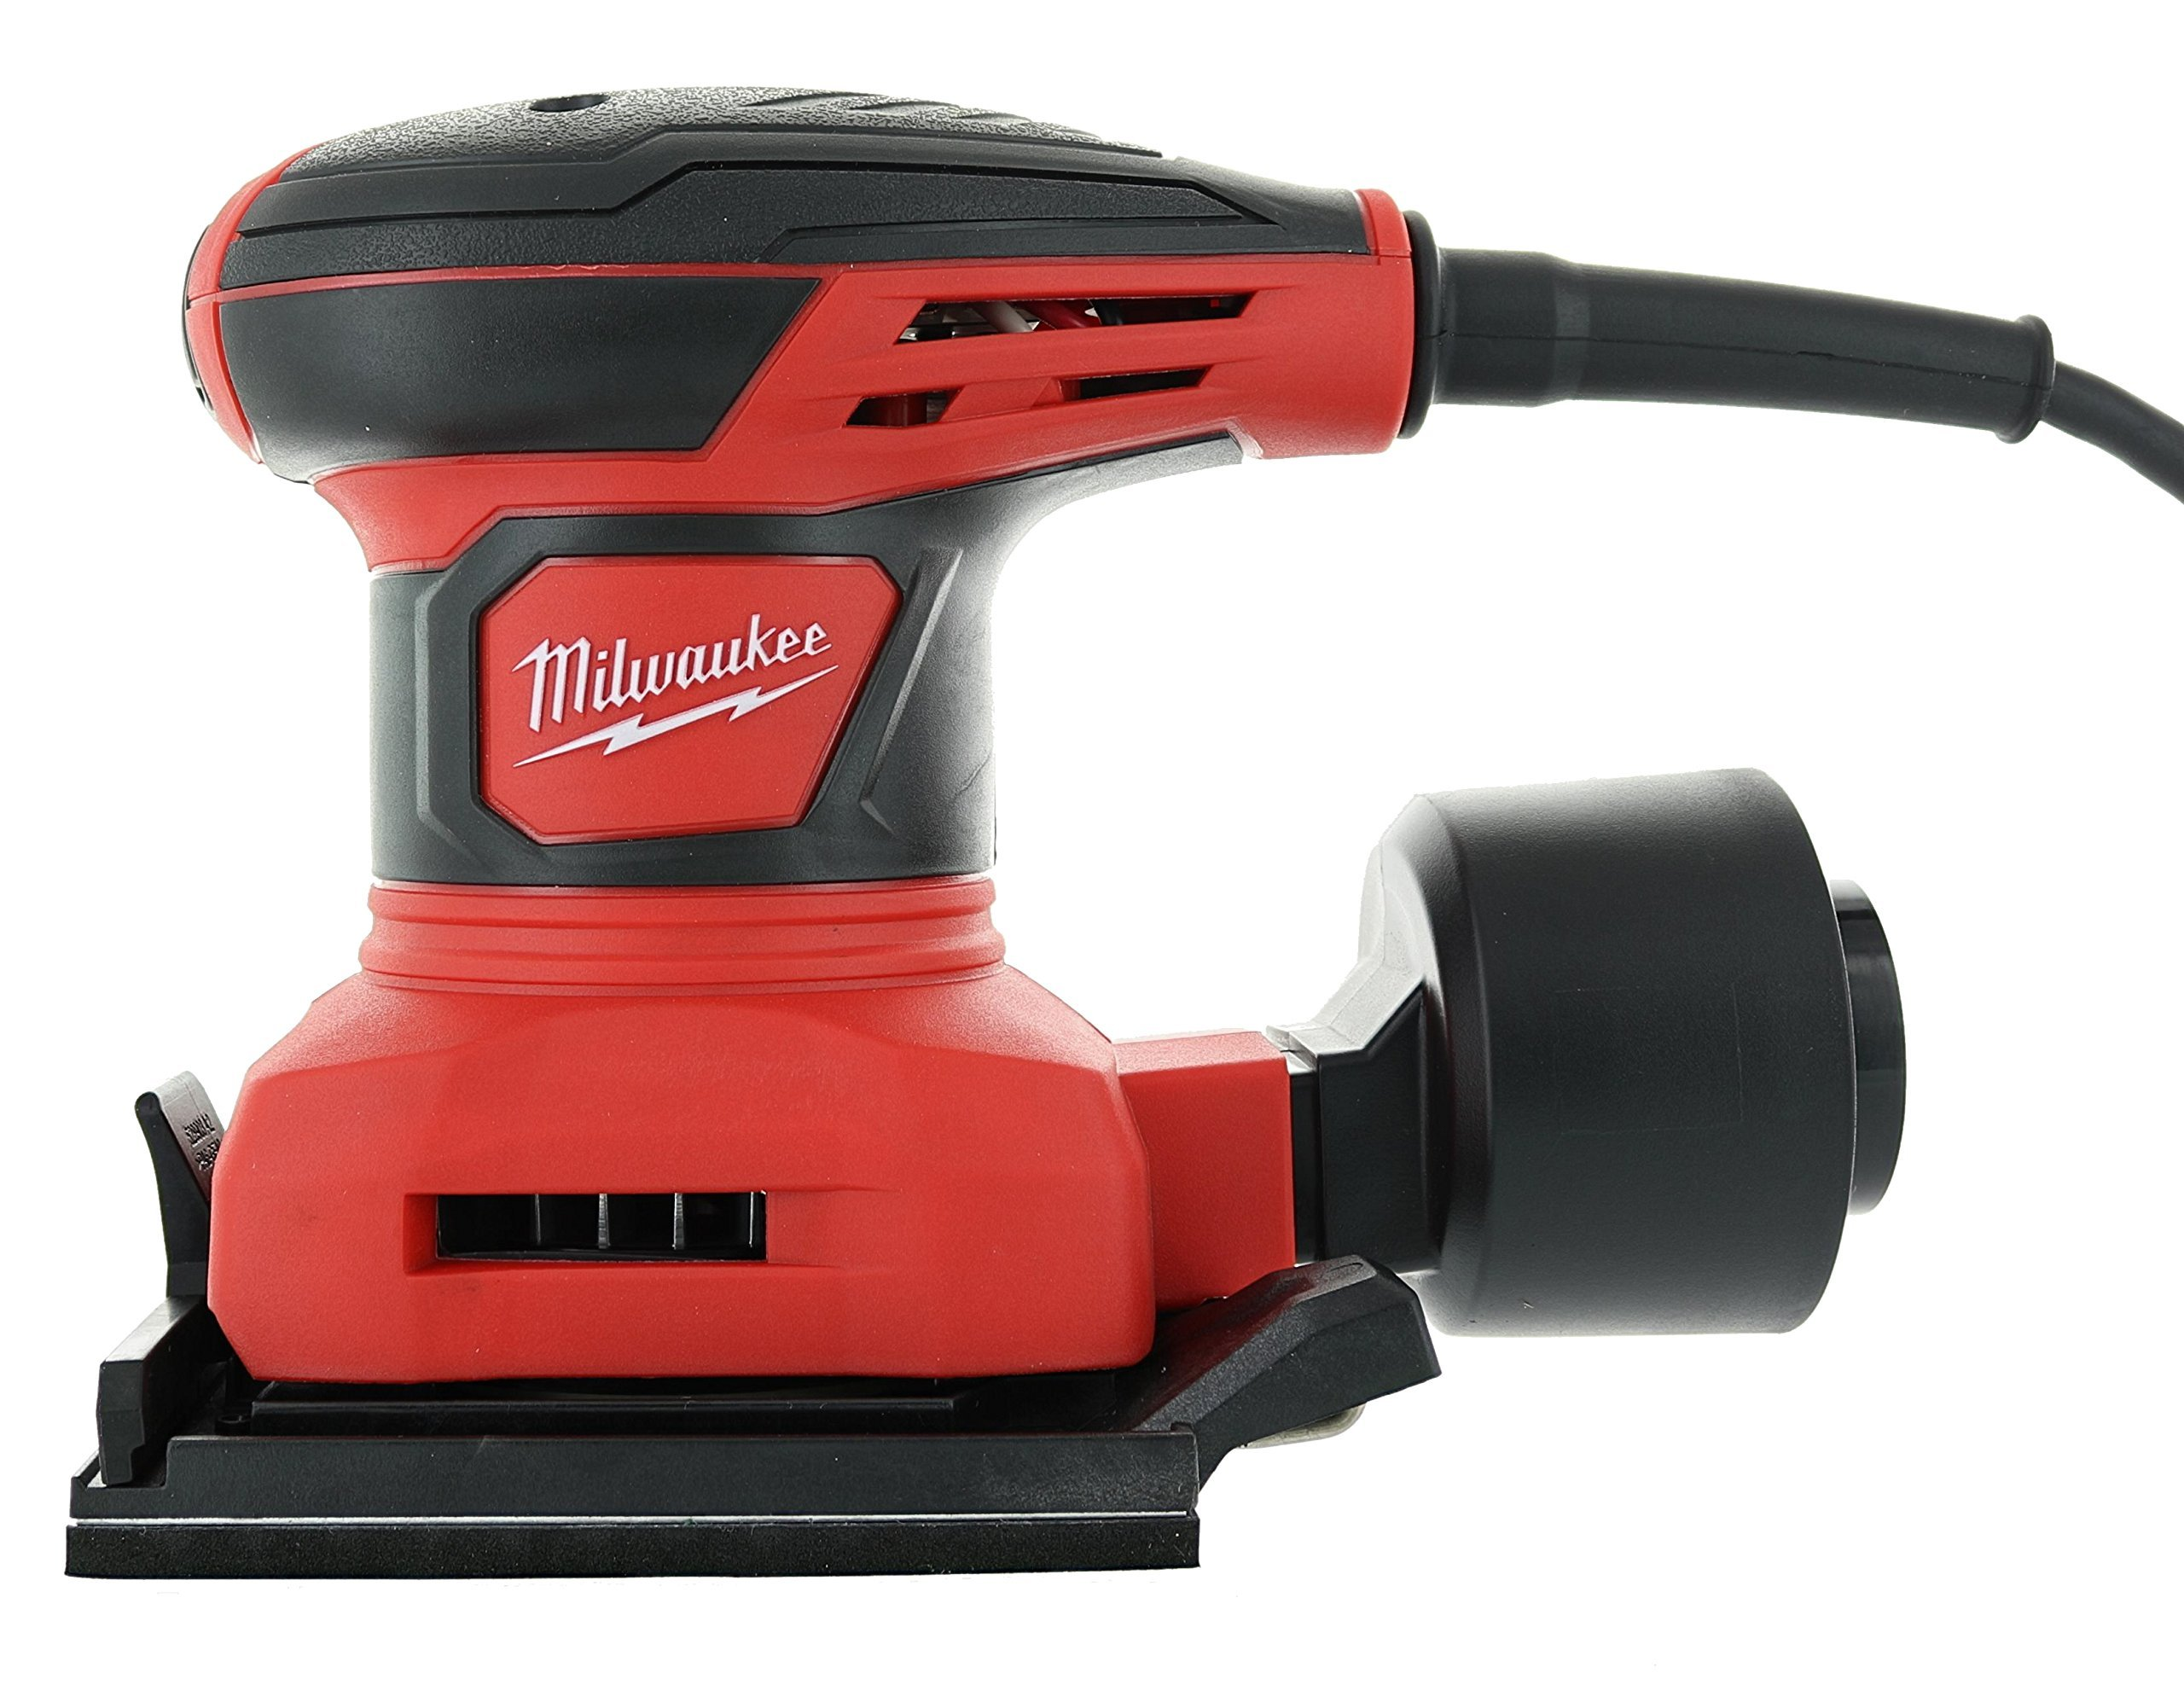 Milwaukee 6033-21 3 Amp 1/4 Sheet Orbital 14,000 OBM Compact Palm Sander with Dust Canister (2 Sheets of Sandpaper Included) by Milwaukee (Image #3)